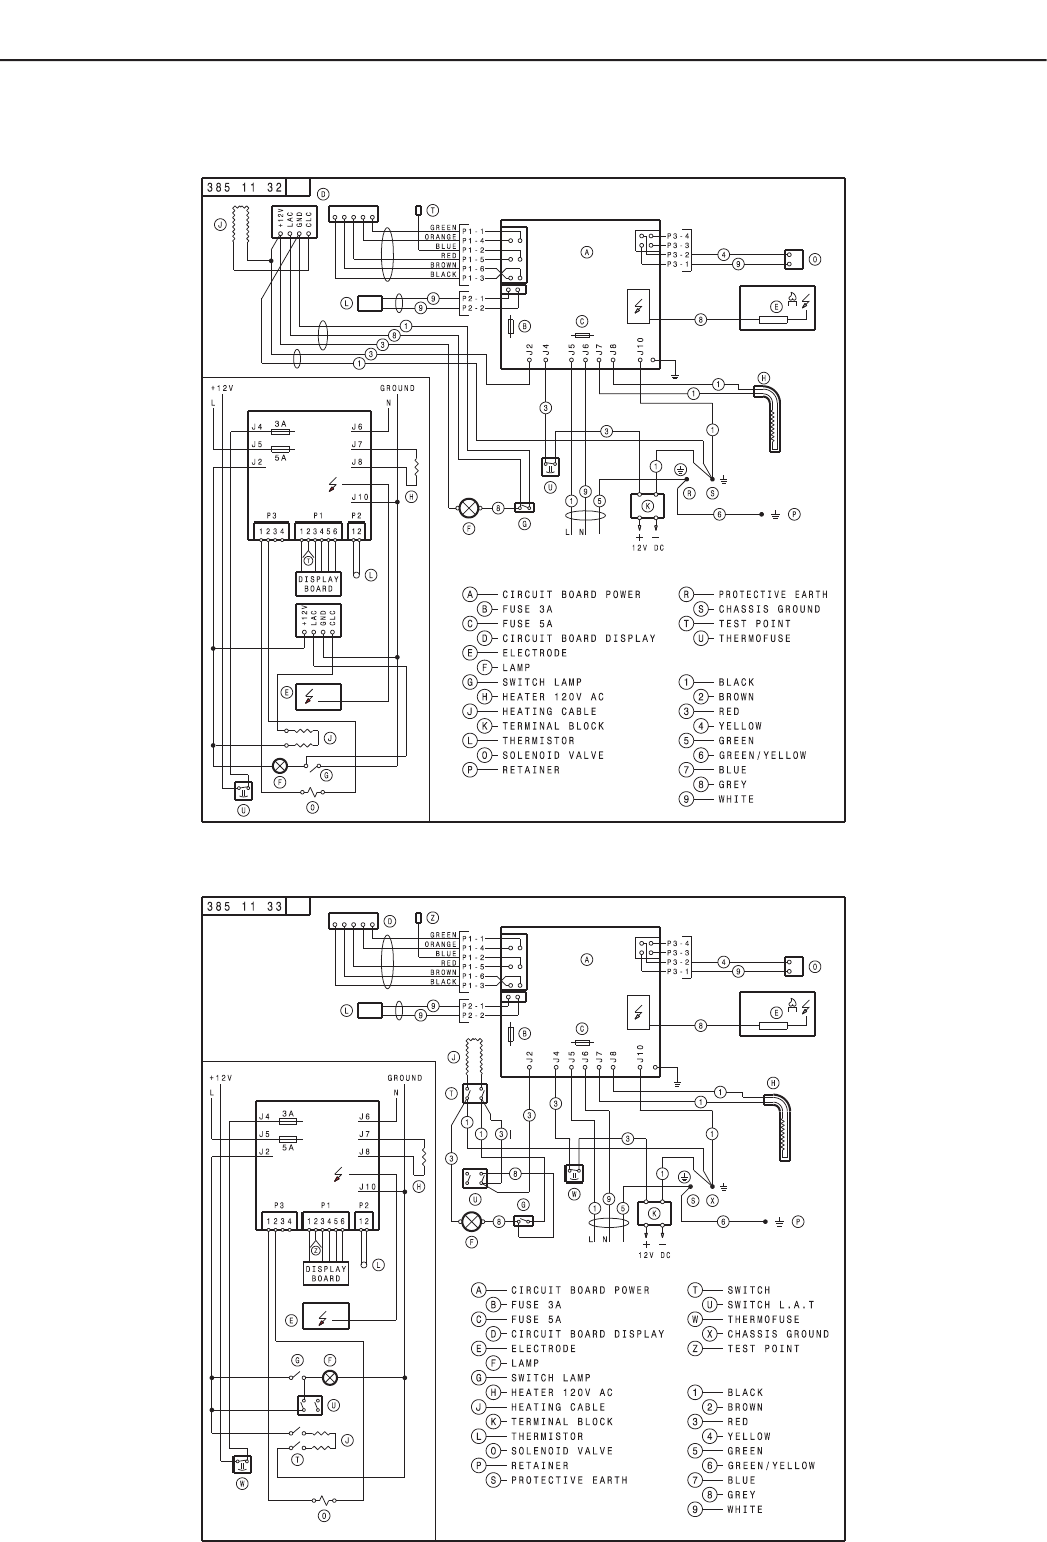 dometic rv thermostat wiring diagram inverter pdf rm3862 refrigerator